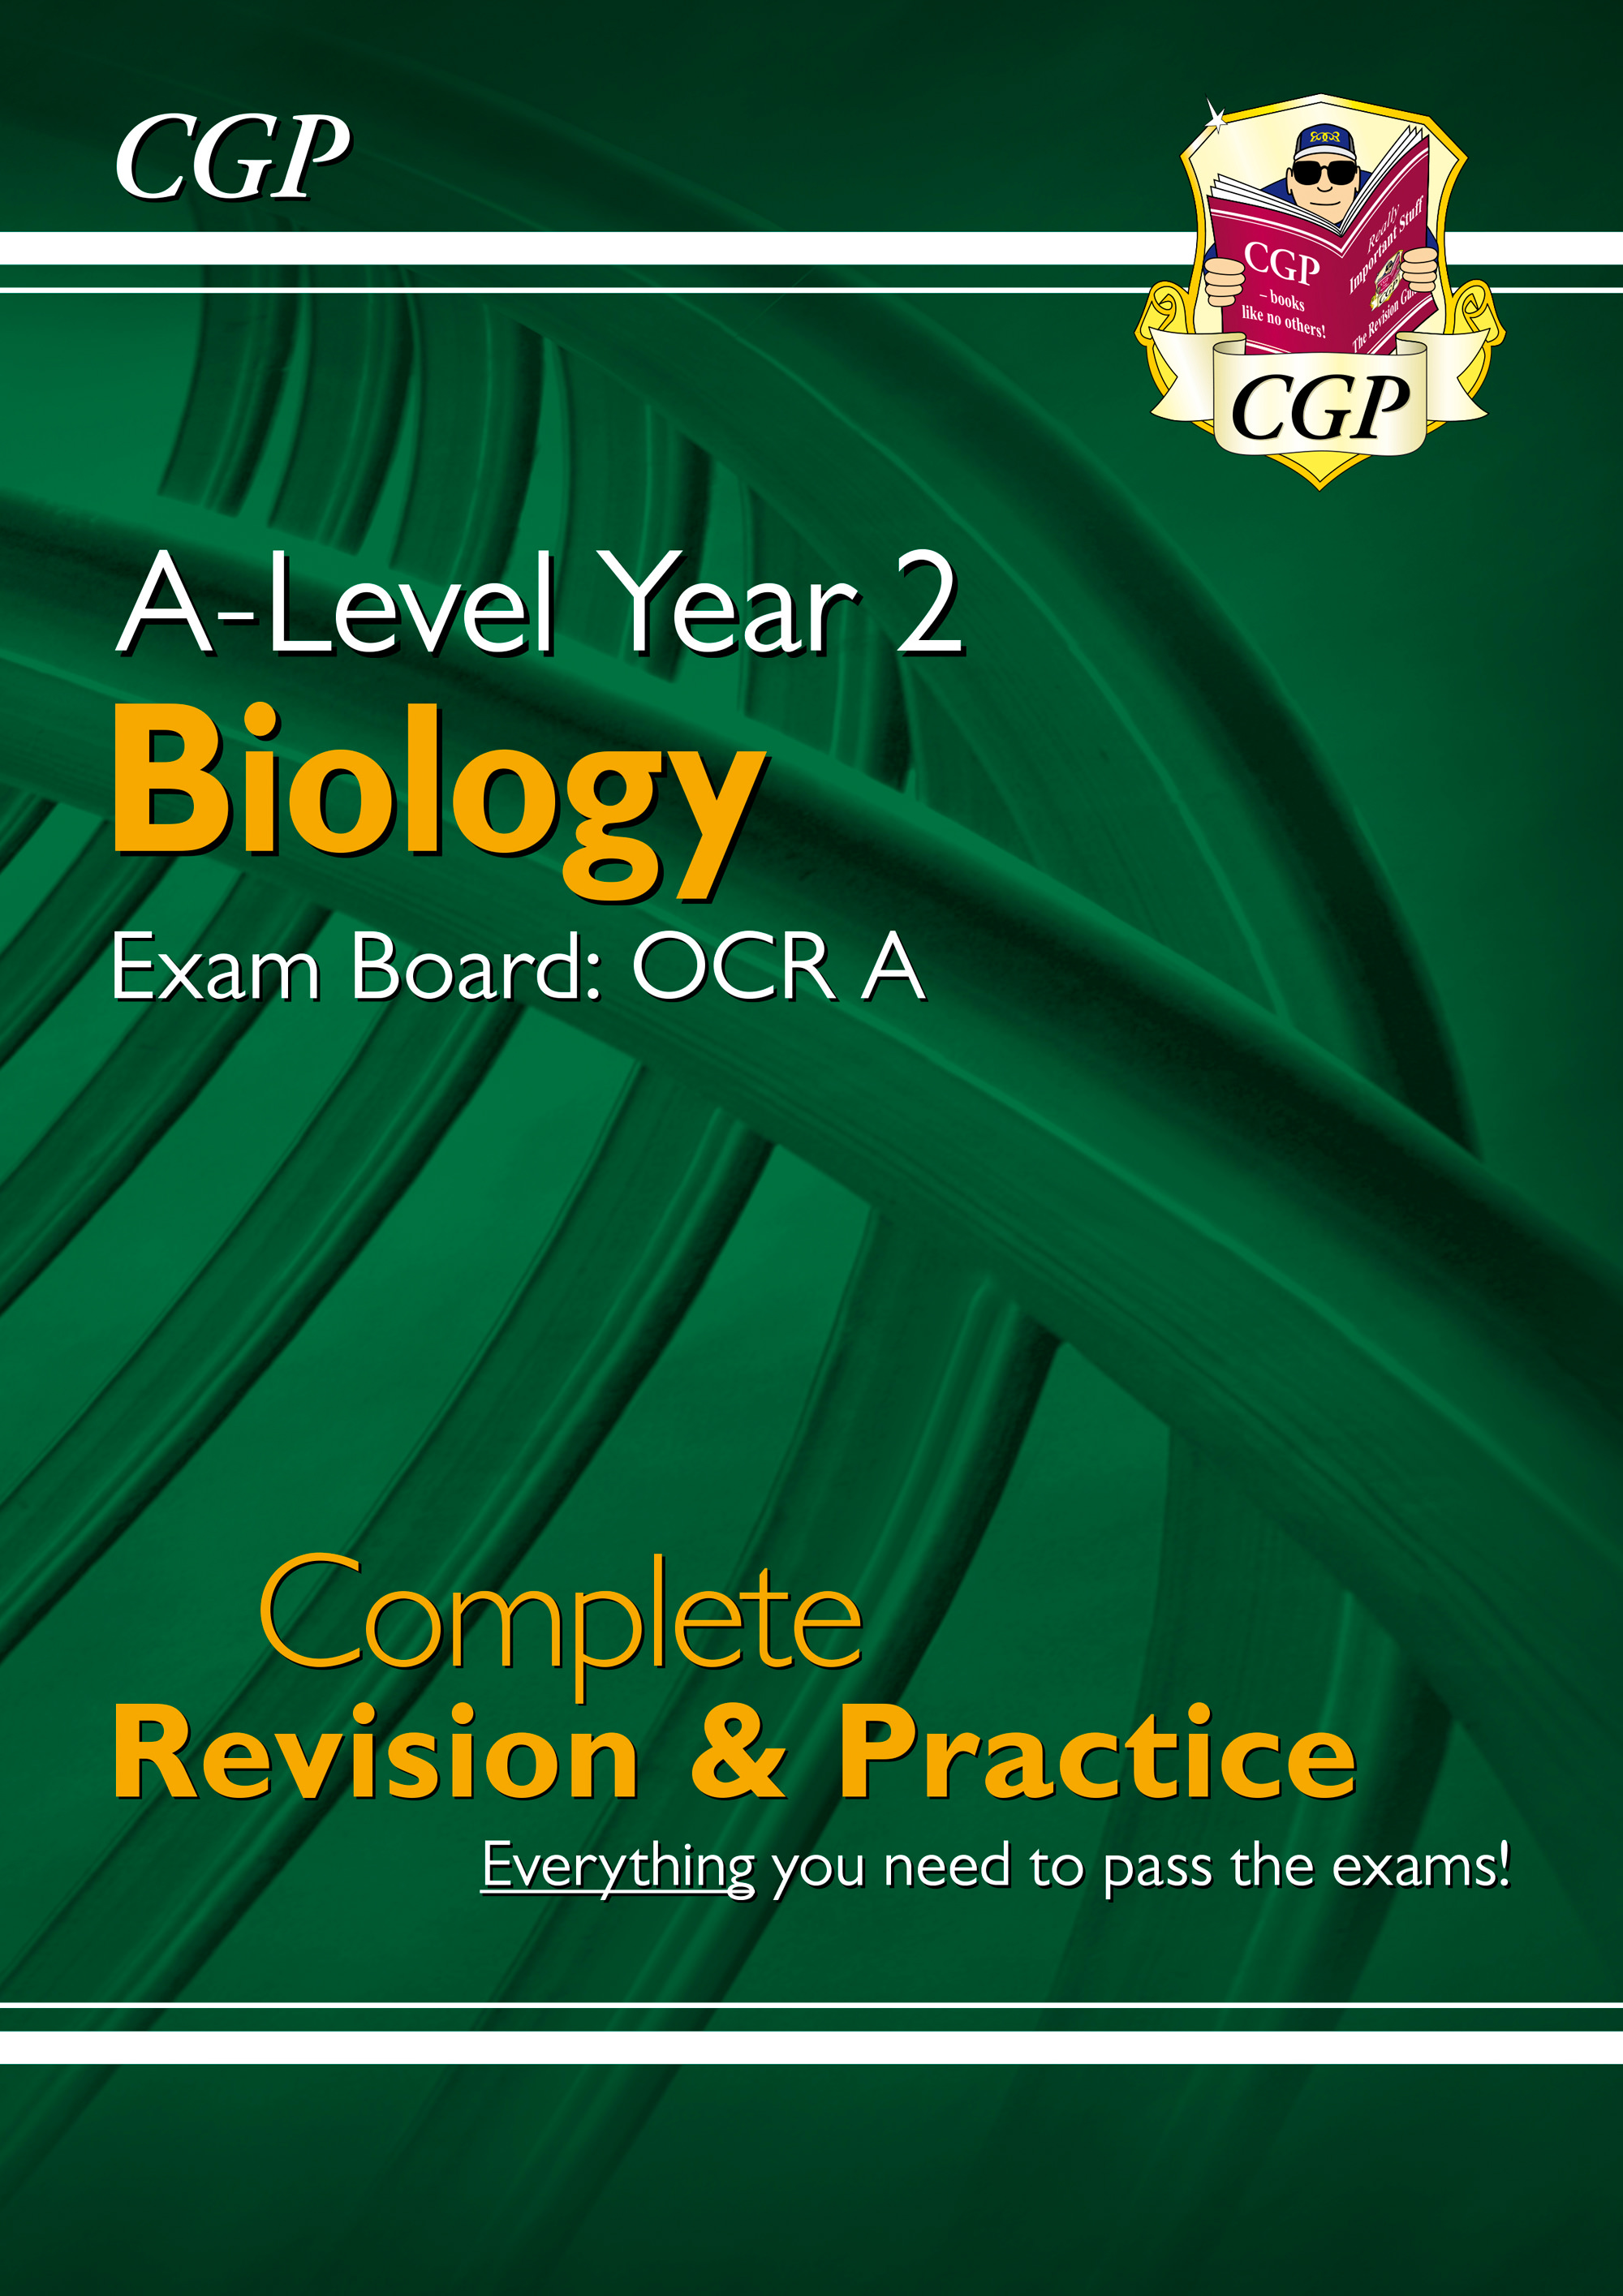 BRAR63DK - New A-Level Biology for 2018: OCR A Year 2 Complete Revision & Practice